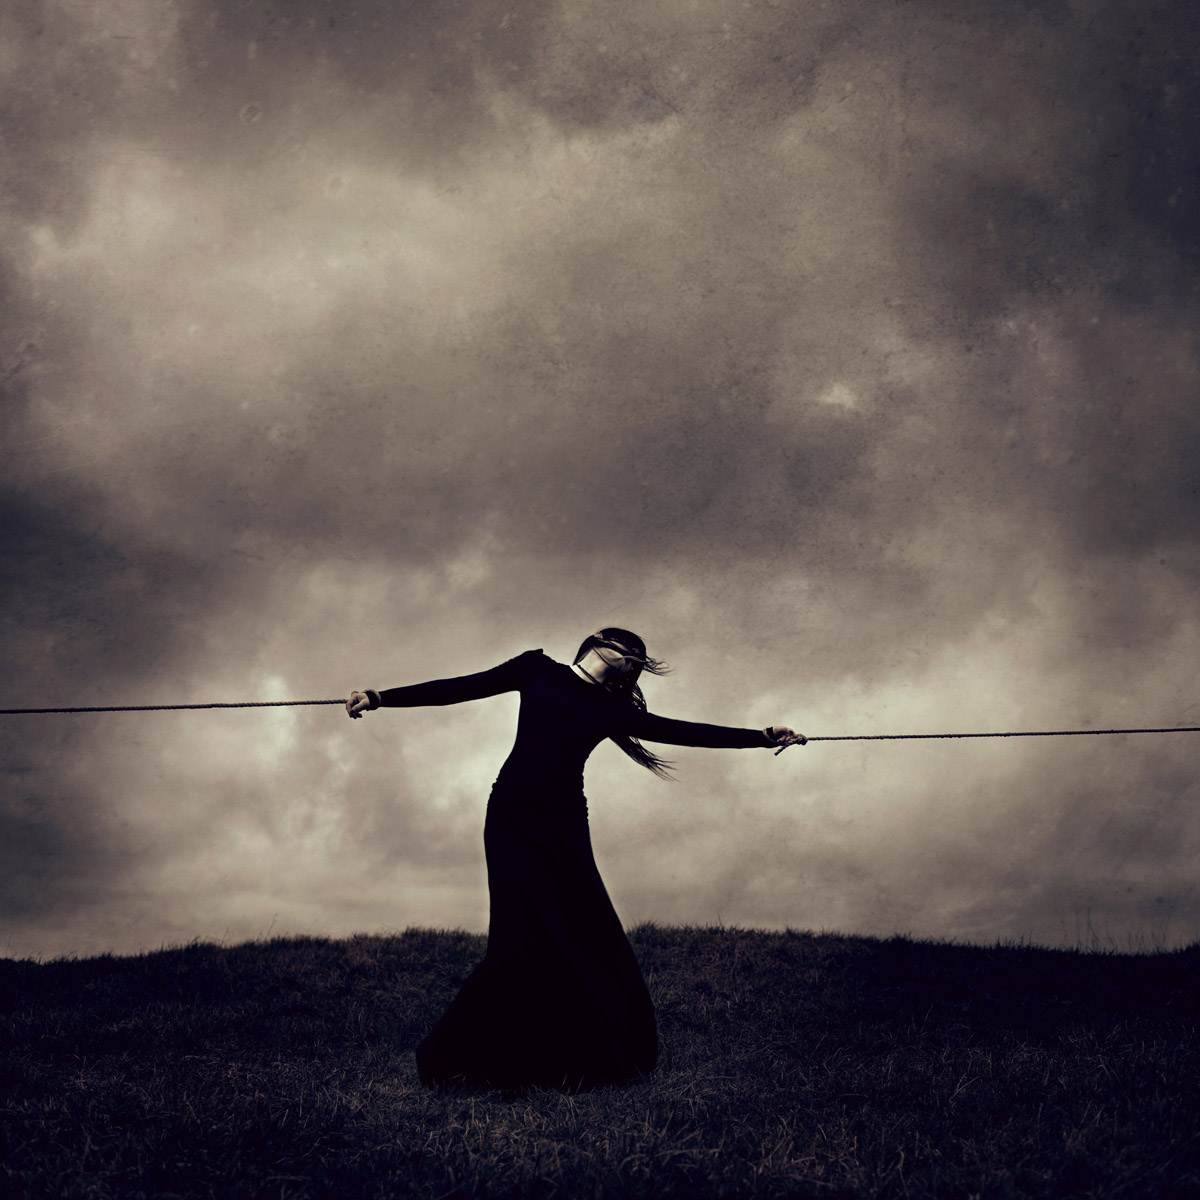 Anja Matko | Other works